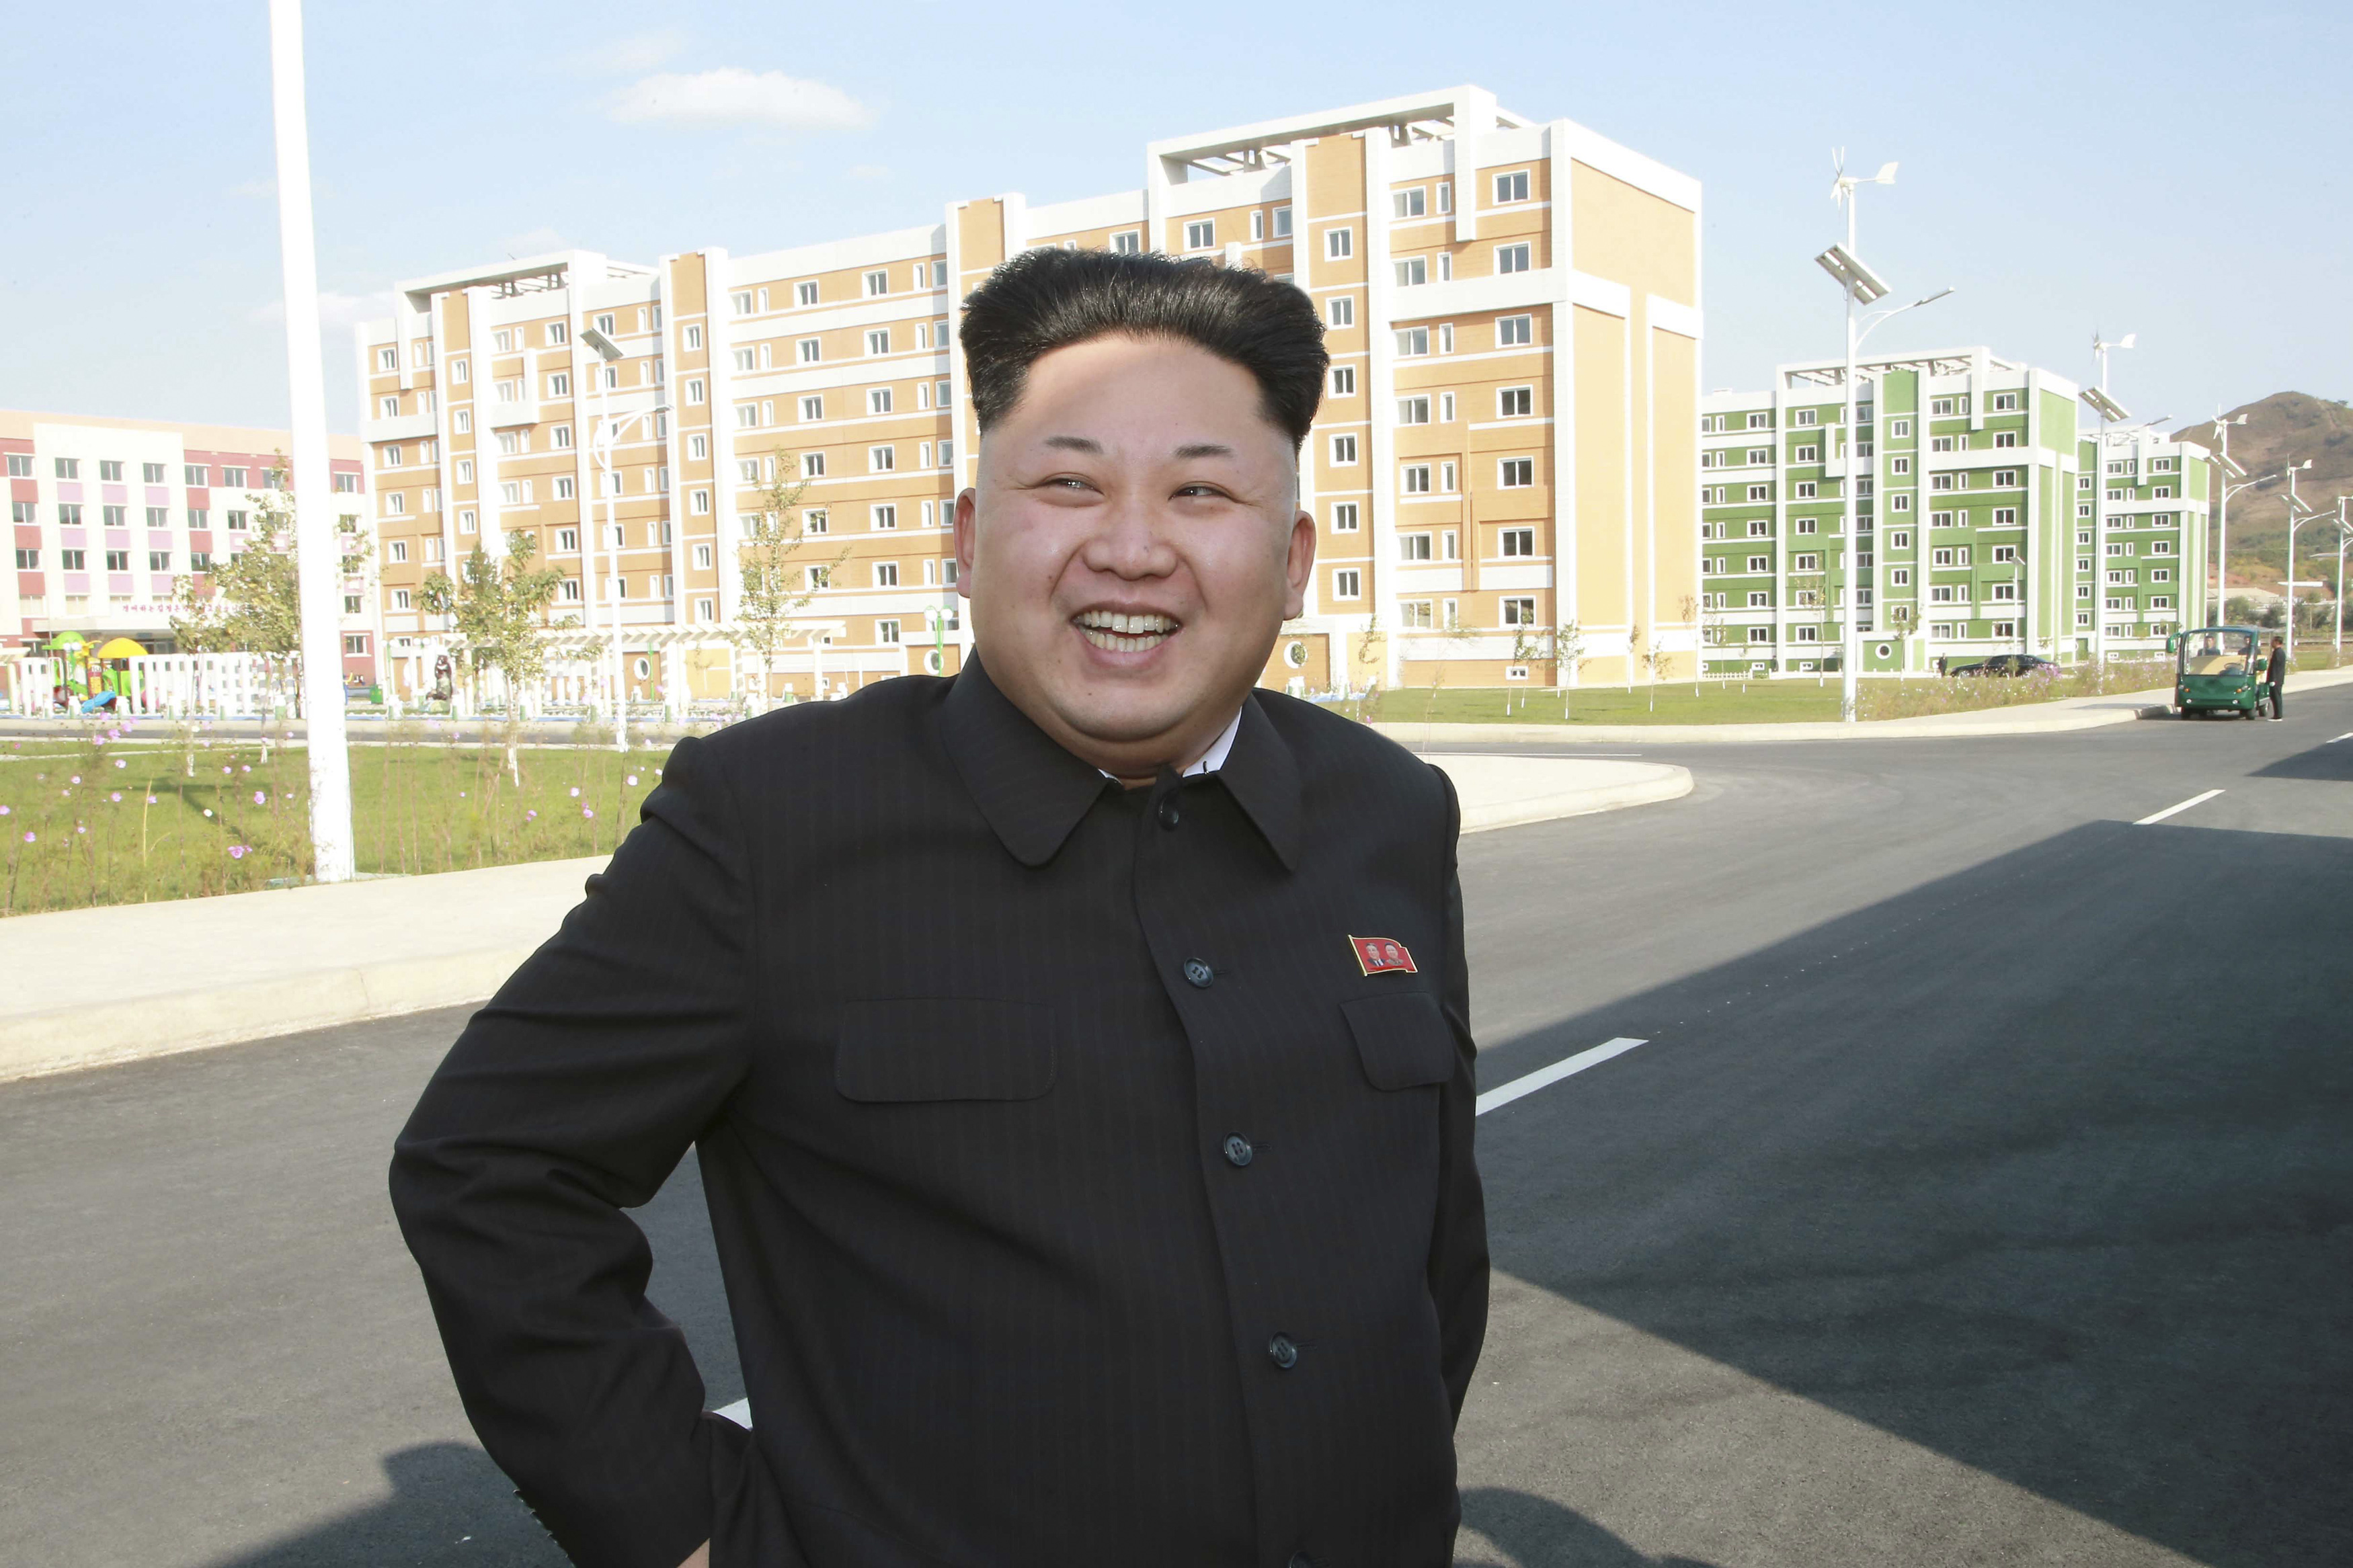 Kim Jong Un Had Cyst Removed From Ankle: Seoul Spy Agency